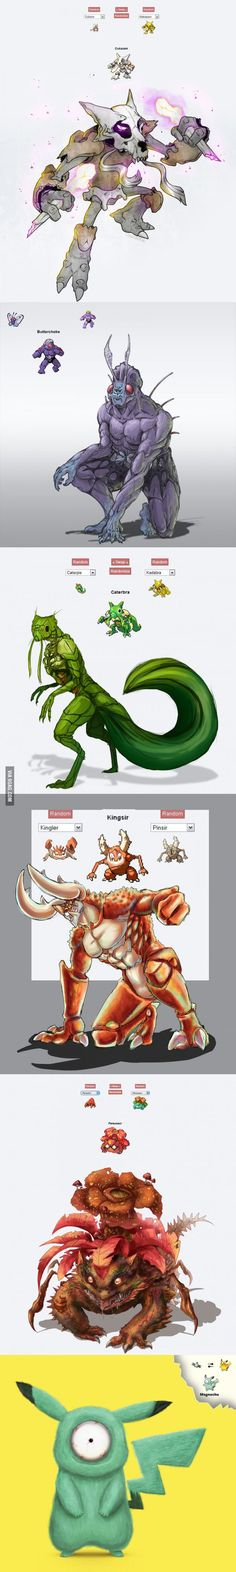 14 Best Awesome Images Drawings Funny Things Monsters